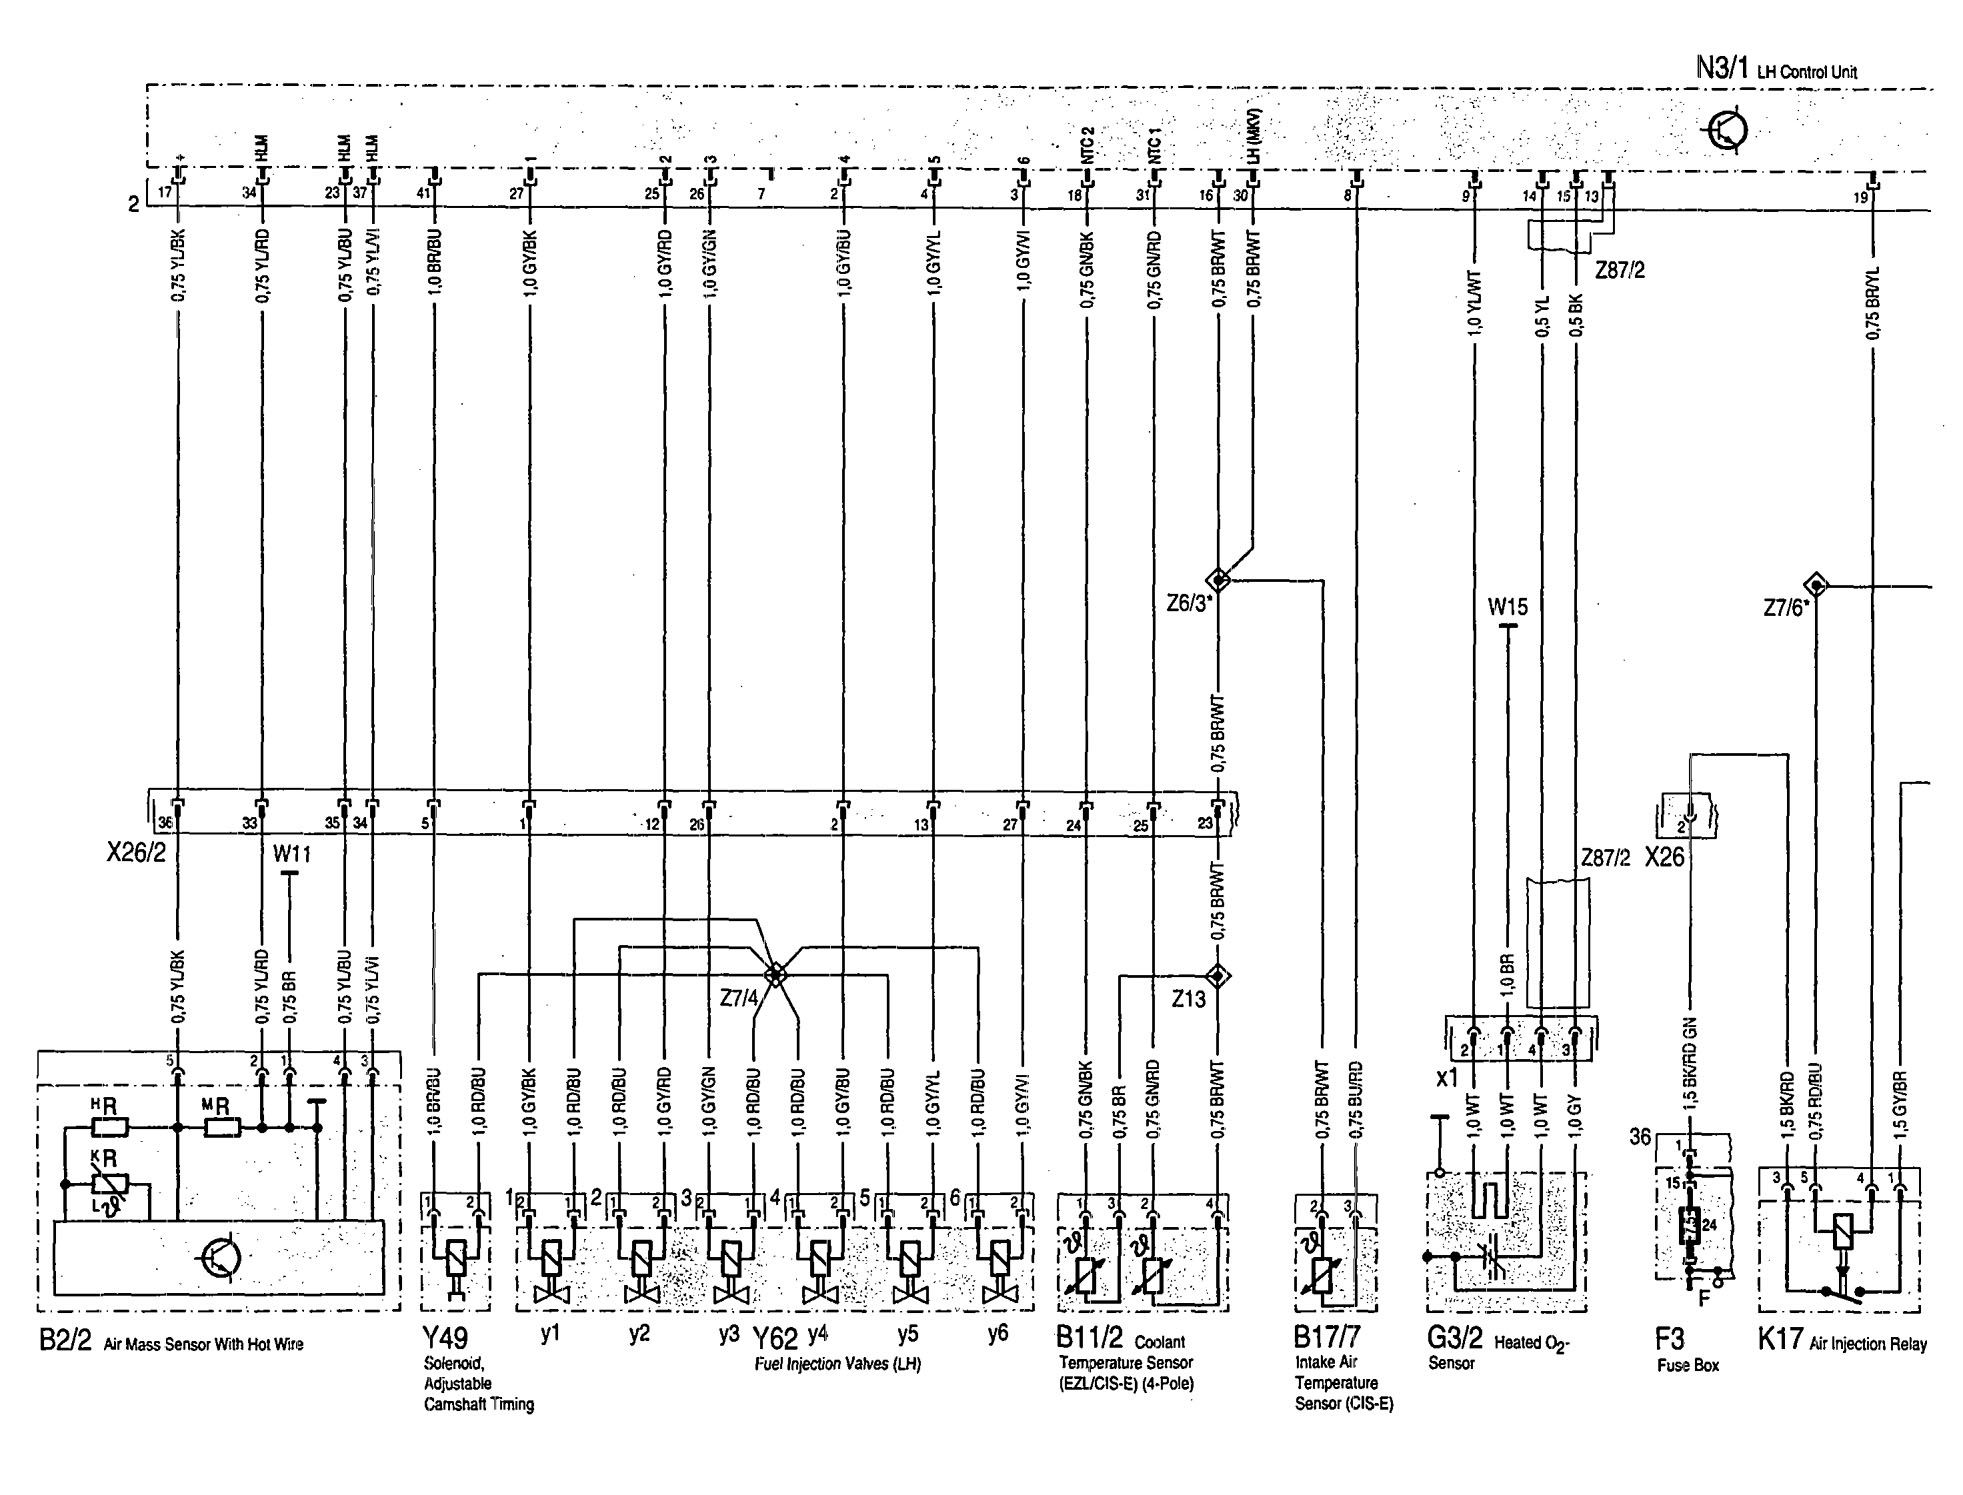 1991 Mercedes Benz Fuse Diagram Trusted Wiring Diagrams Box 1992 300se Auto Electrical U2022 2008 C300 Chart